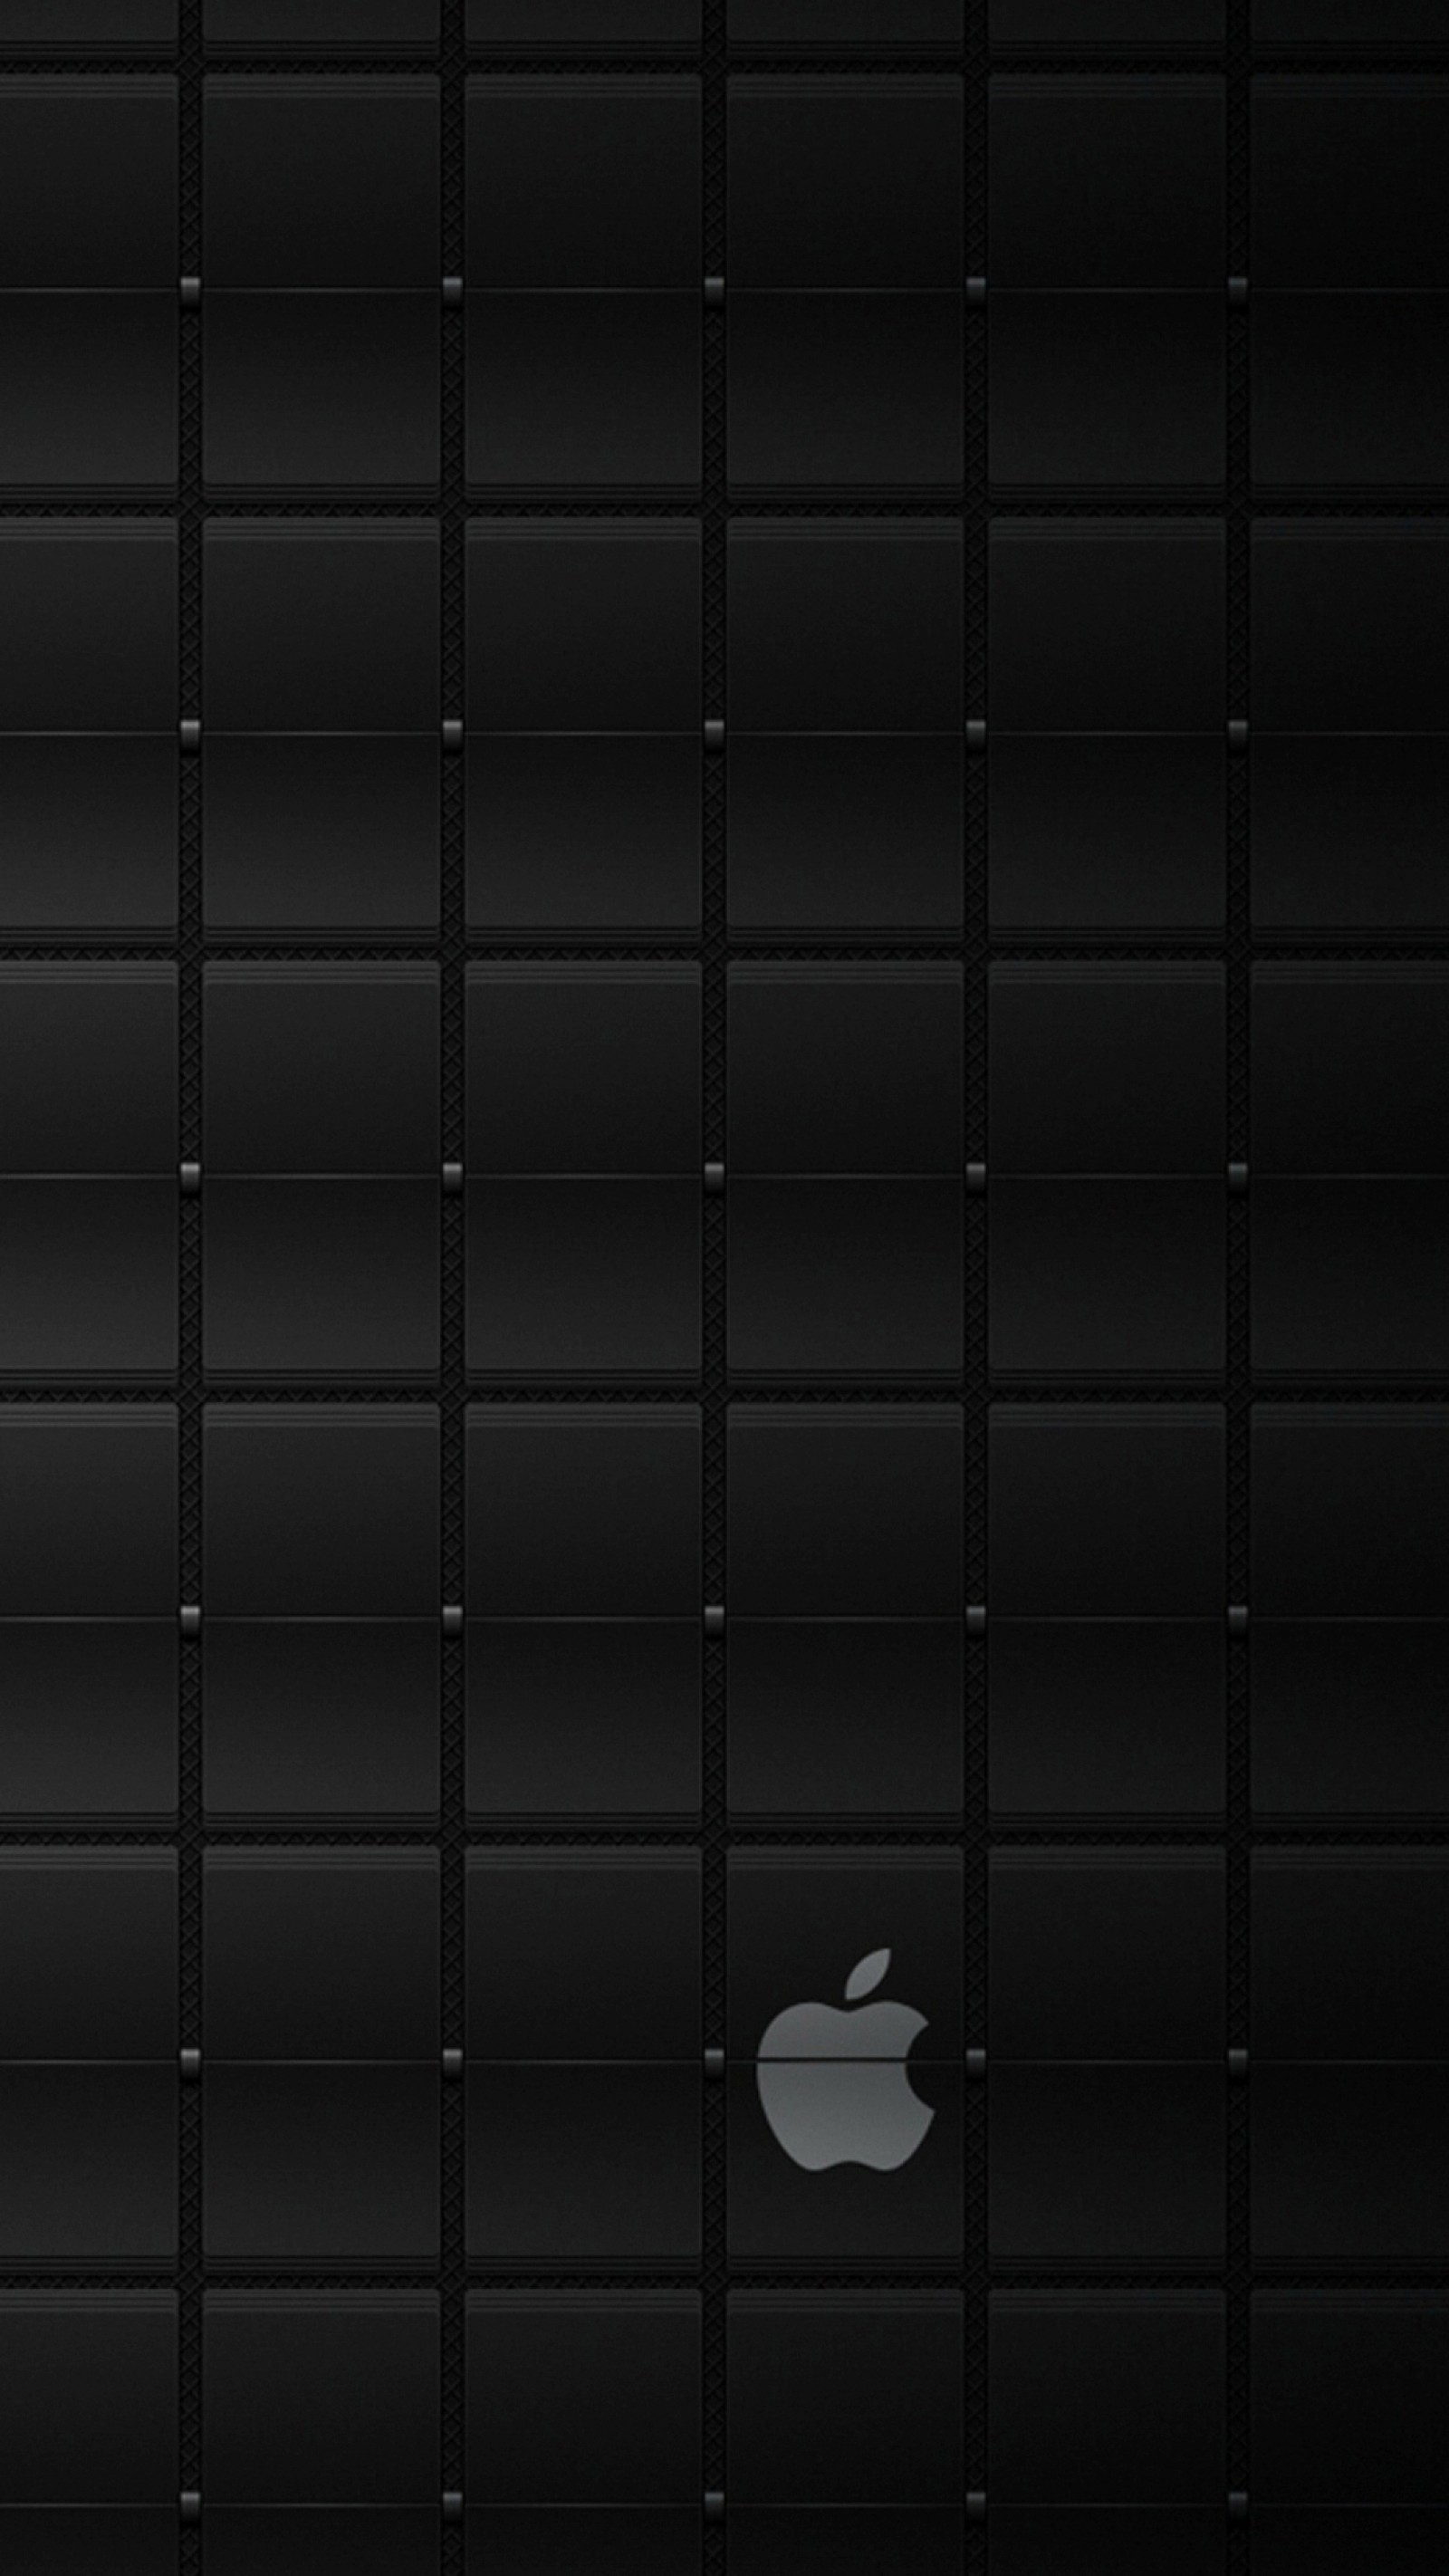 iphone 5 wallpapers (81+ background pictures)